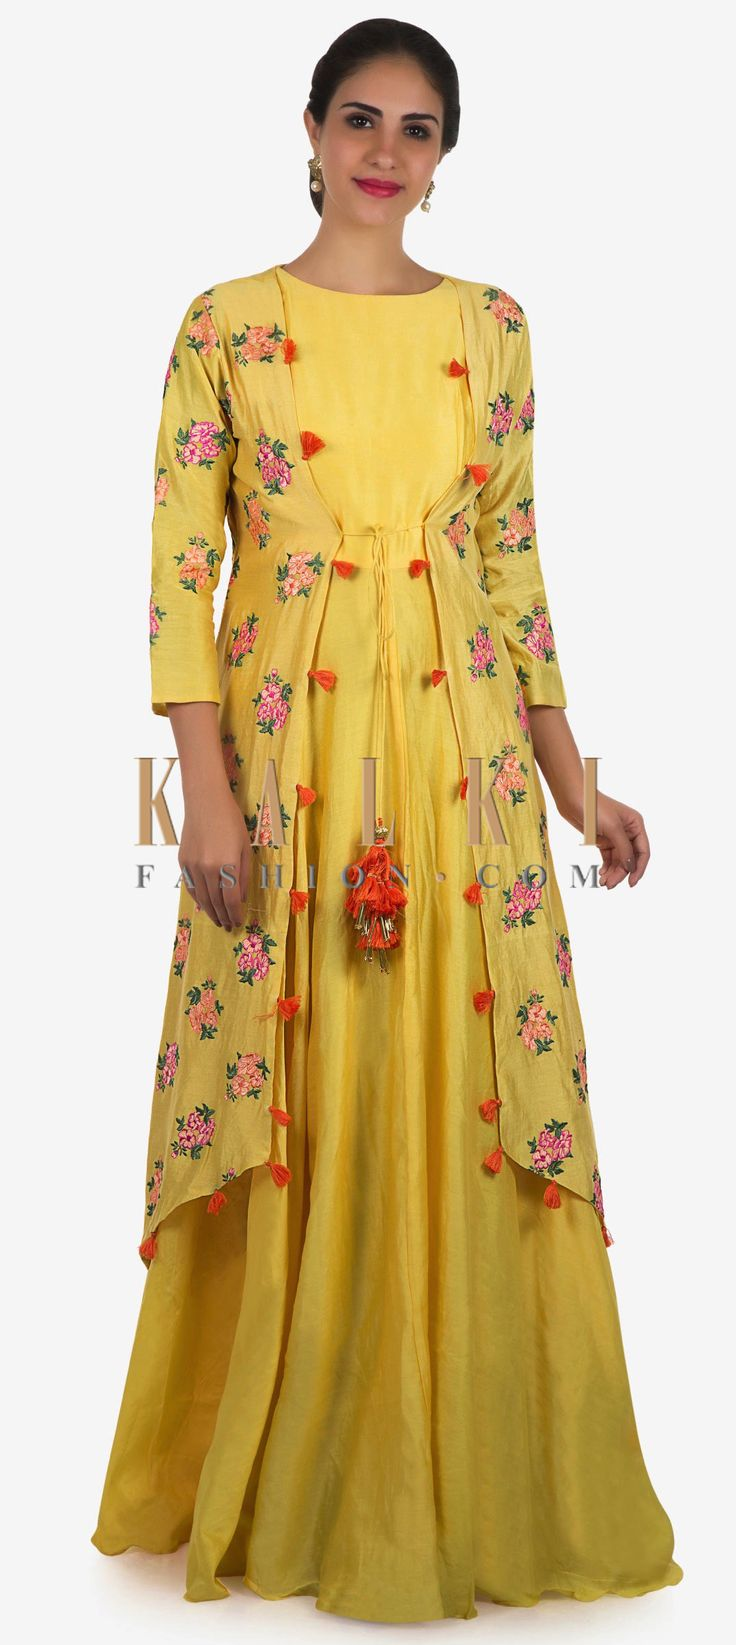 Buy Online from the link below. We ship worldwide Click Anywhere to Tag Yellow tunic in cotton with jacket beautified in resham butti work only on Kalki   Yellow tunic is featured in cotton fabric. The tunic is matched with a jacket that is featured in resham floral butti embroidery work with attached tassels at the corner. Slight variation in color is possible.